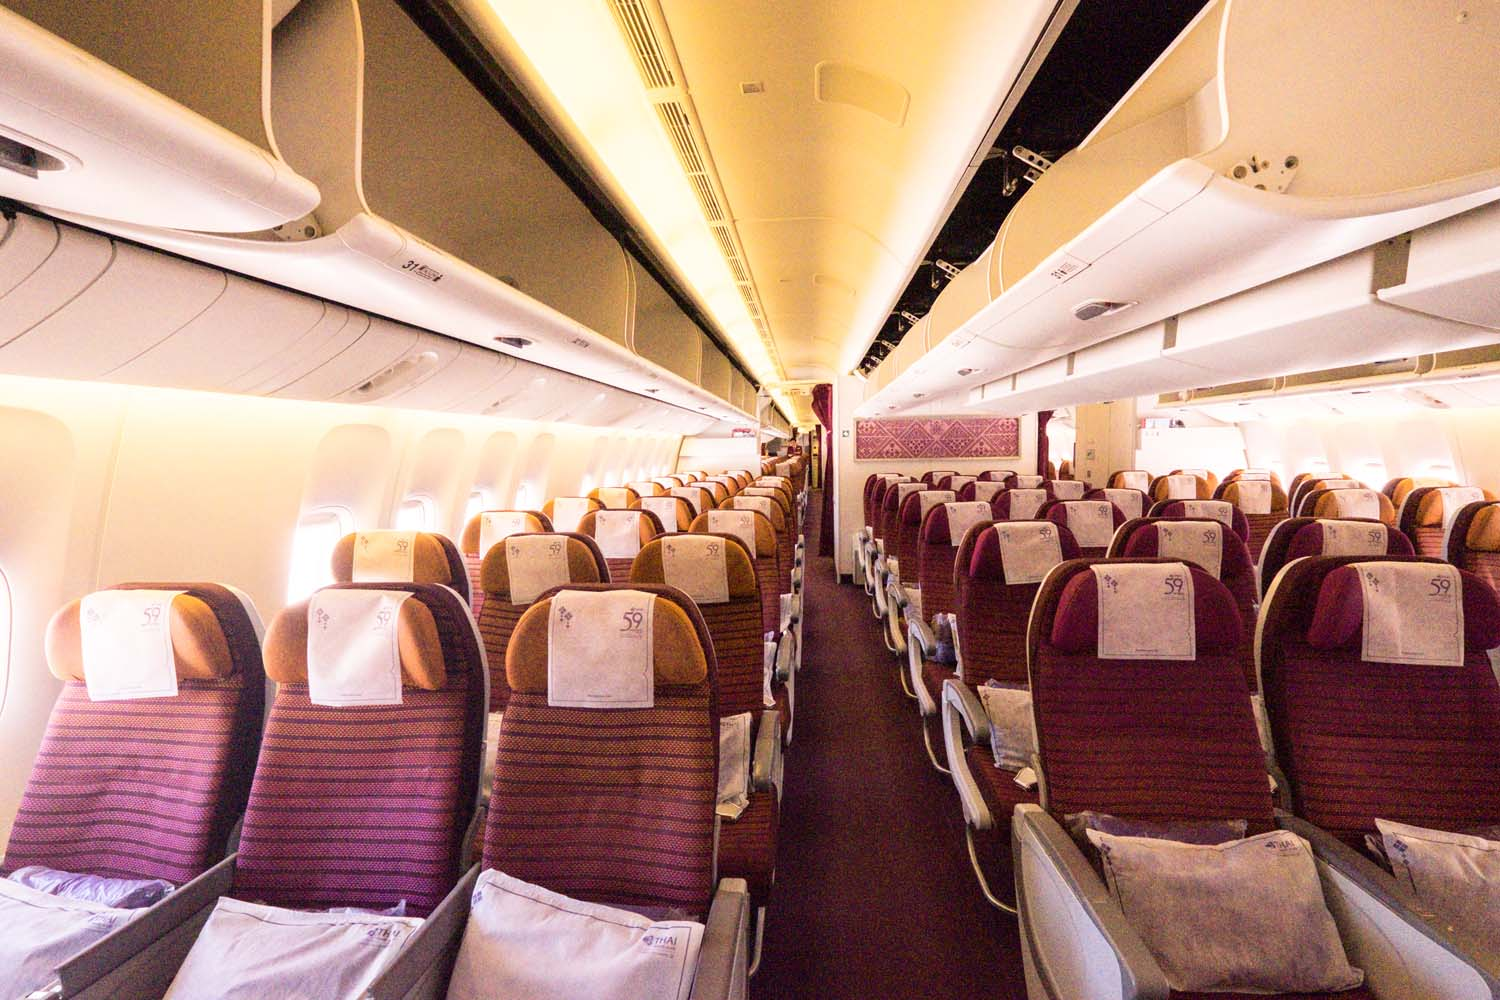 Heading to Thailand & want a reputable, comfortable airline to get you to Bangkok? Read my Thai Airways review - economy class all the way!